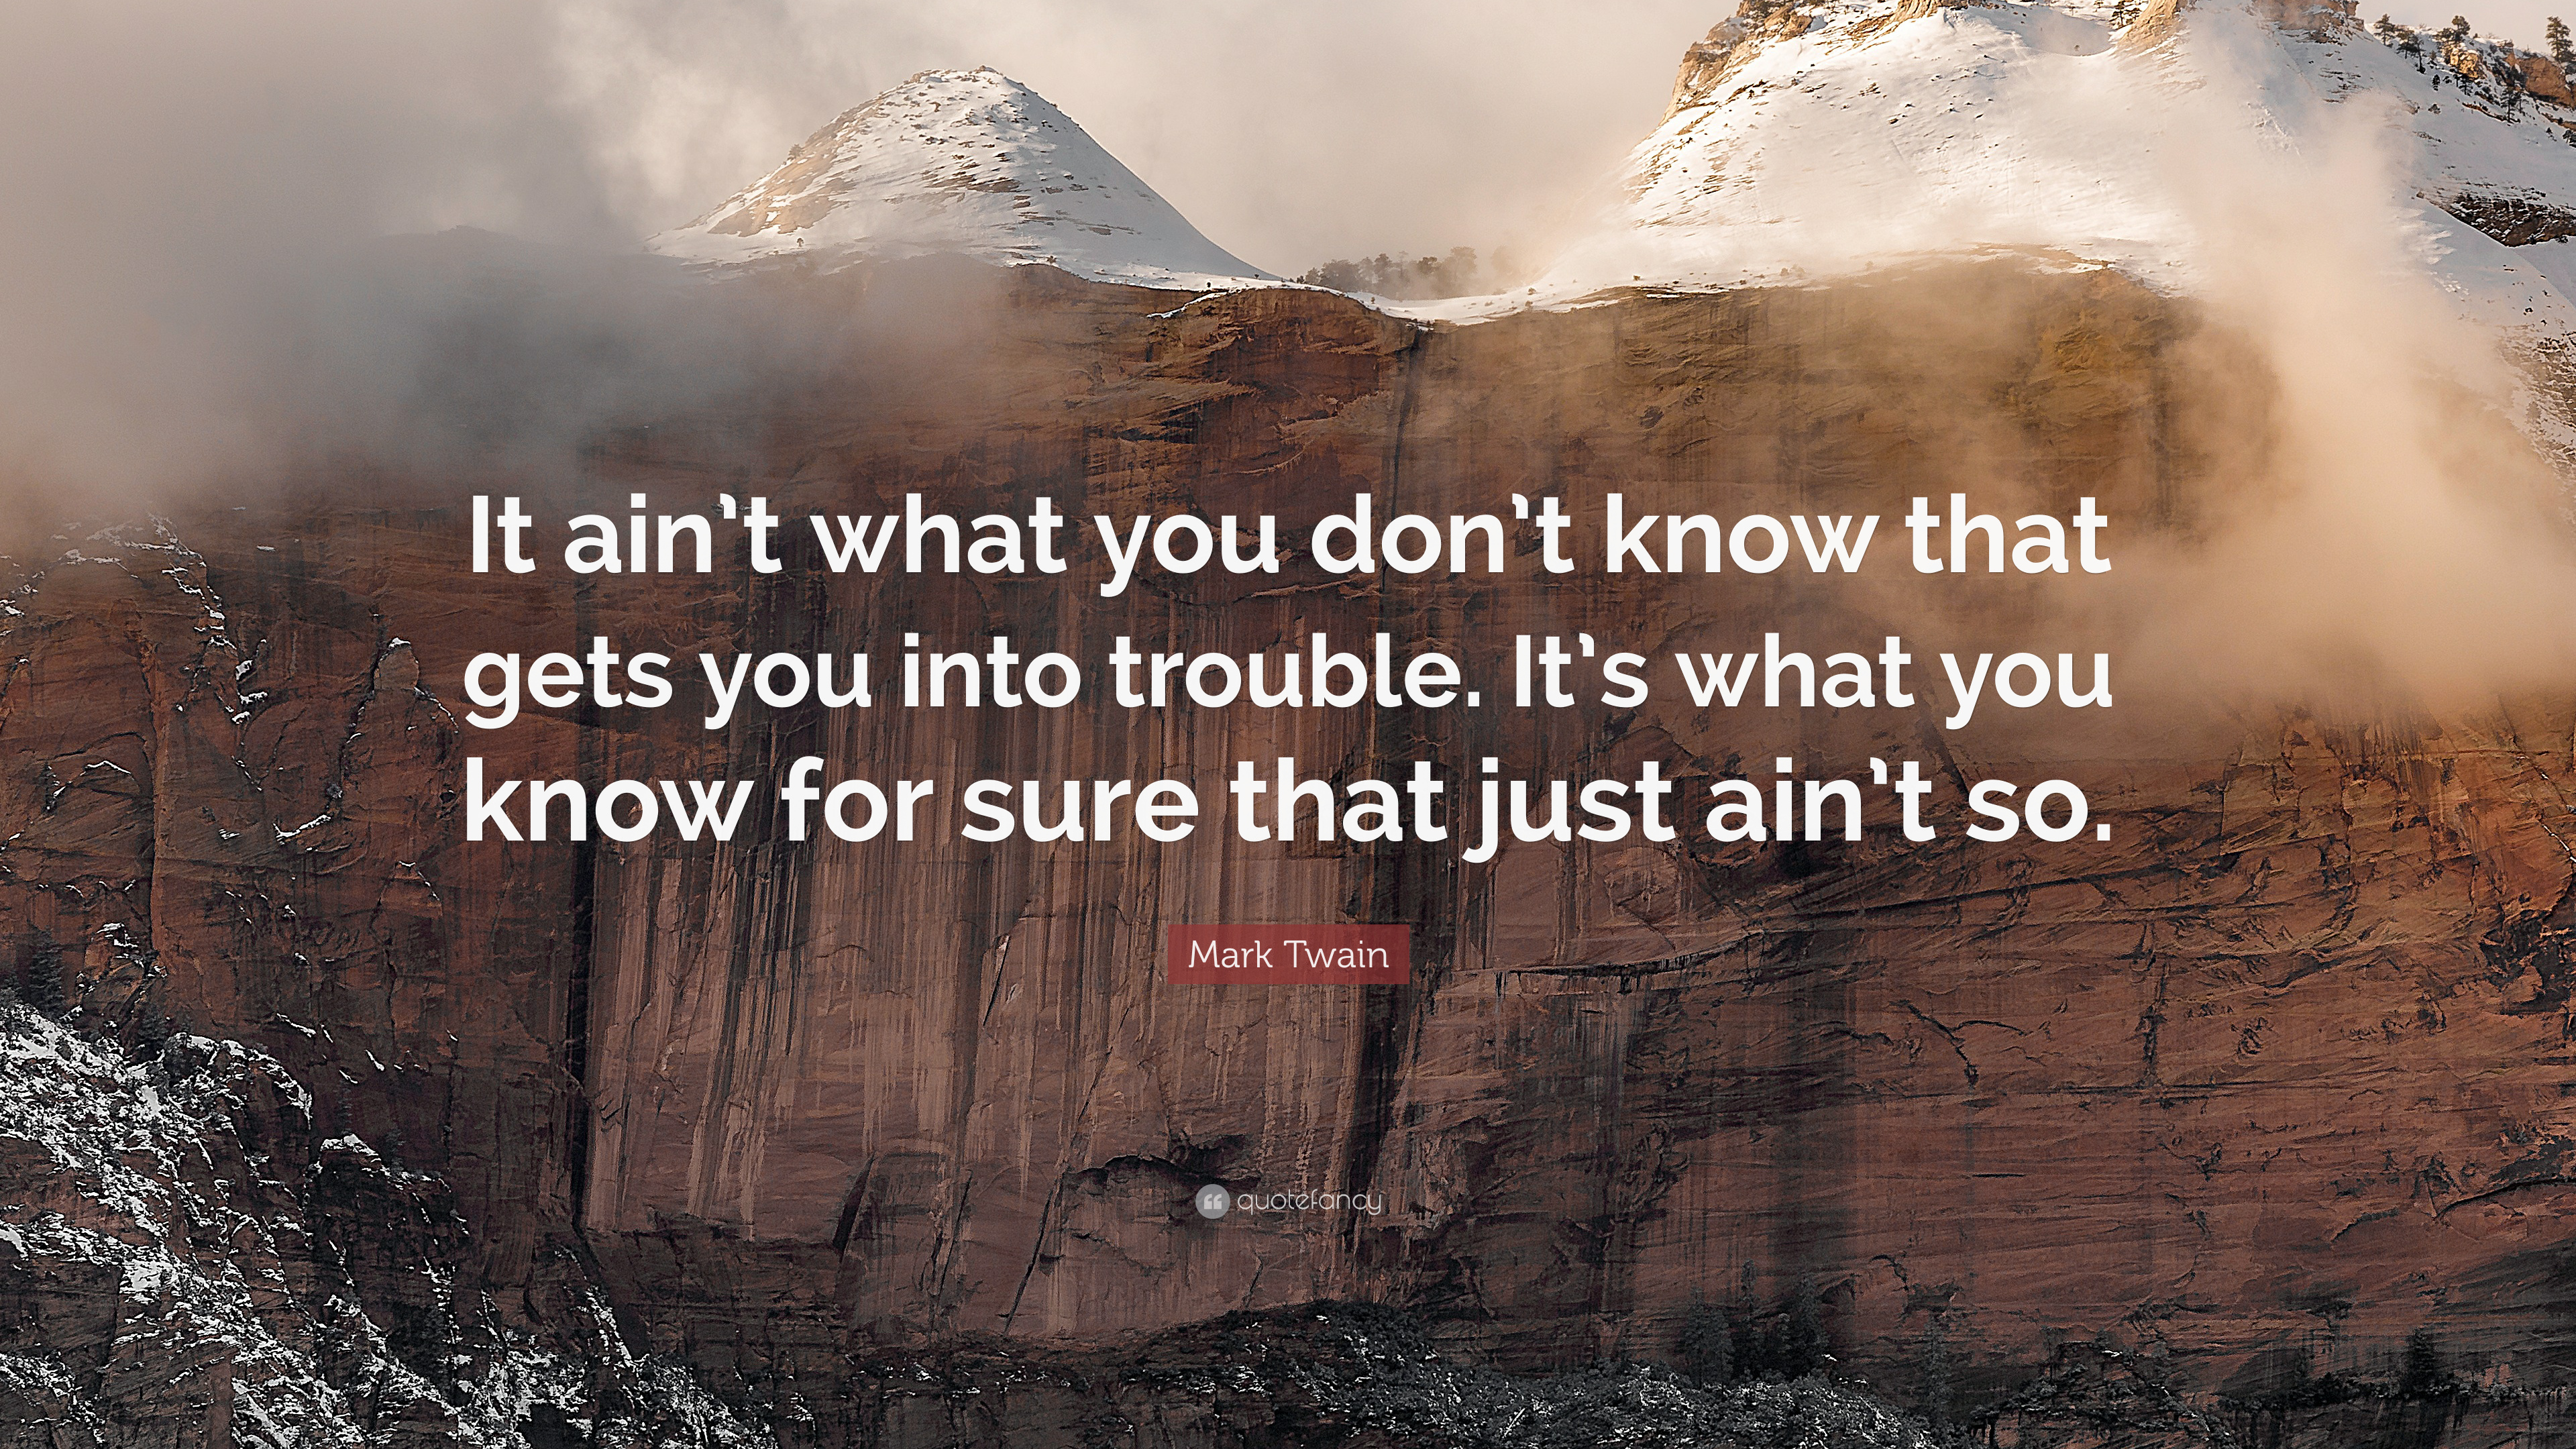 It ain't what you don't know that gets you into trouble. It's what you know for sure that just ain't so. – Mark Twain [ 3840 x 2160 ]